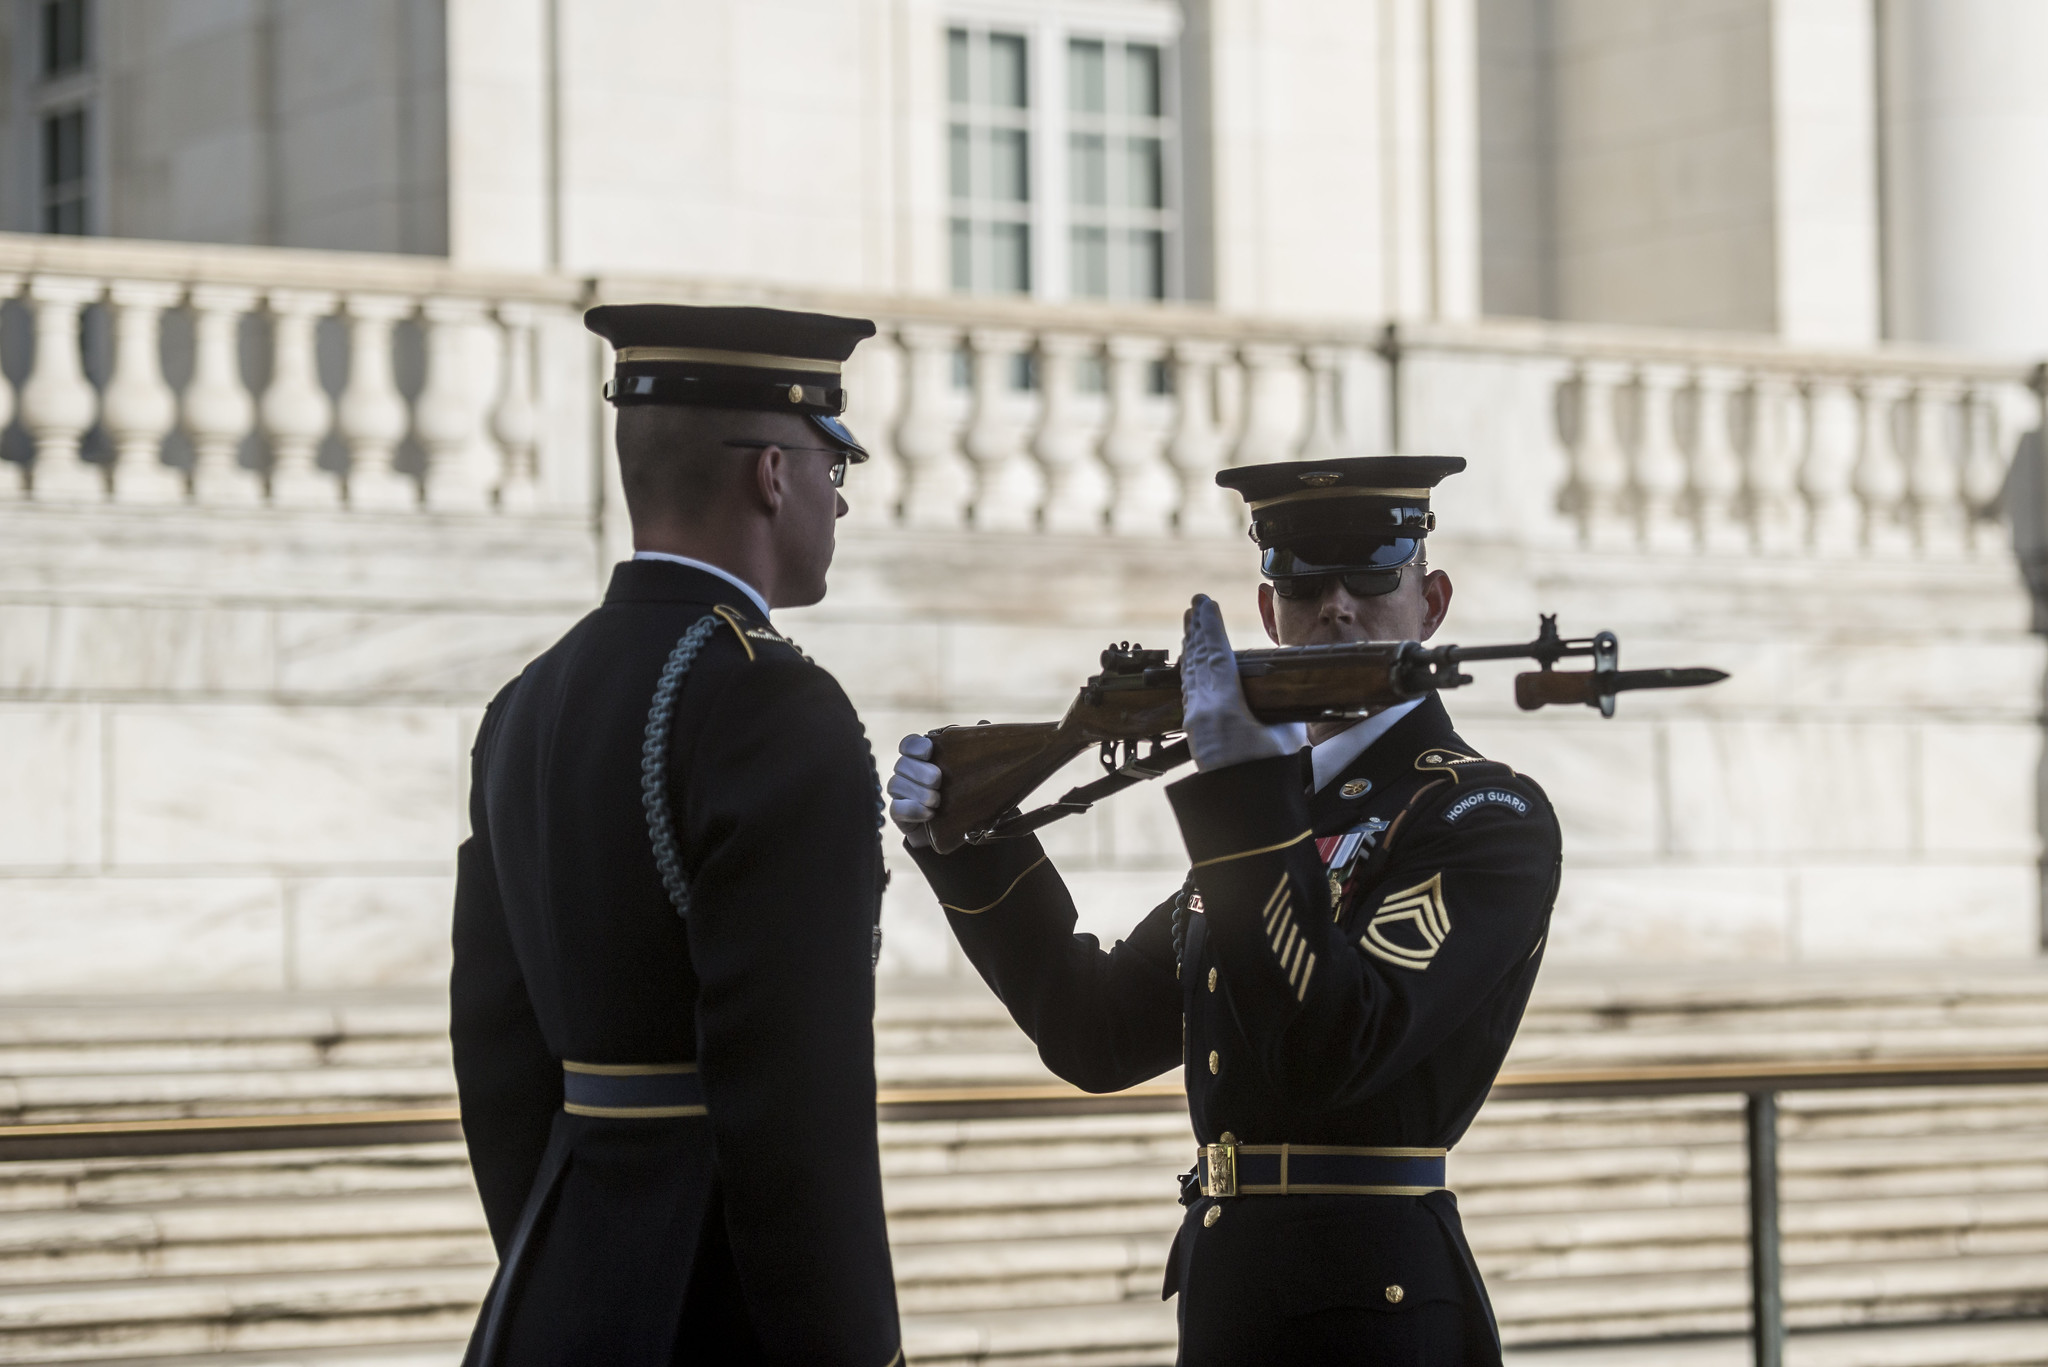 Two members of the 3rd U.S. Infantry Regiment (The Old Guard) participate in the changing of the guard at the Tomb of the Unknown Soldier